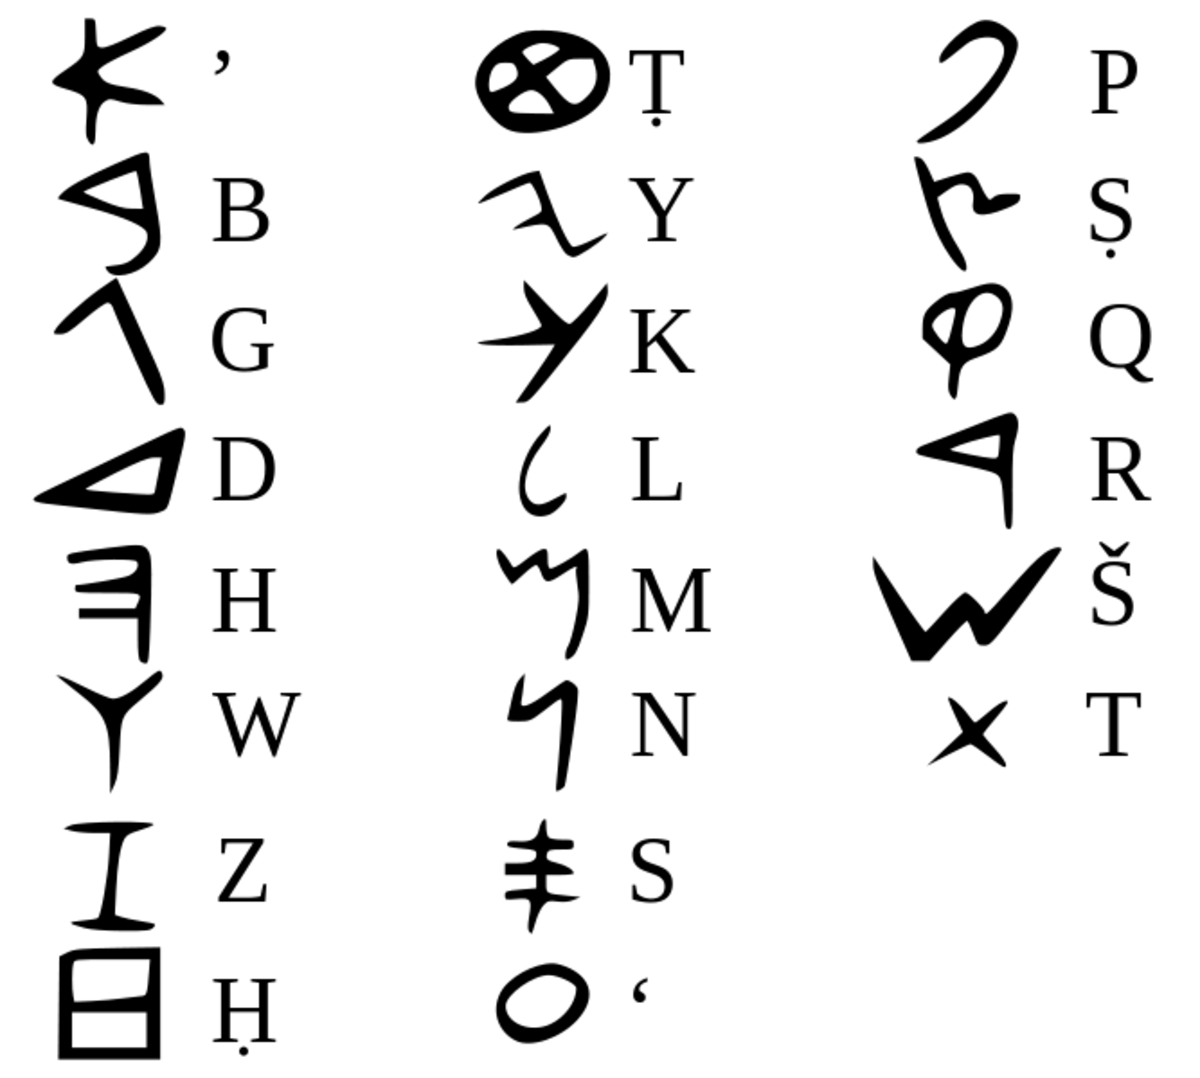 The Phoenician alphabetic script, one of the oldest alphabets in the world.